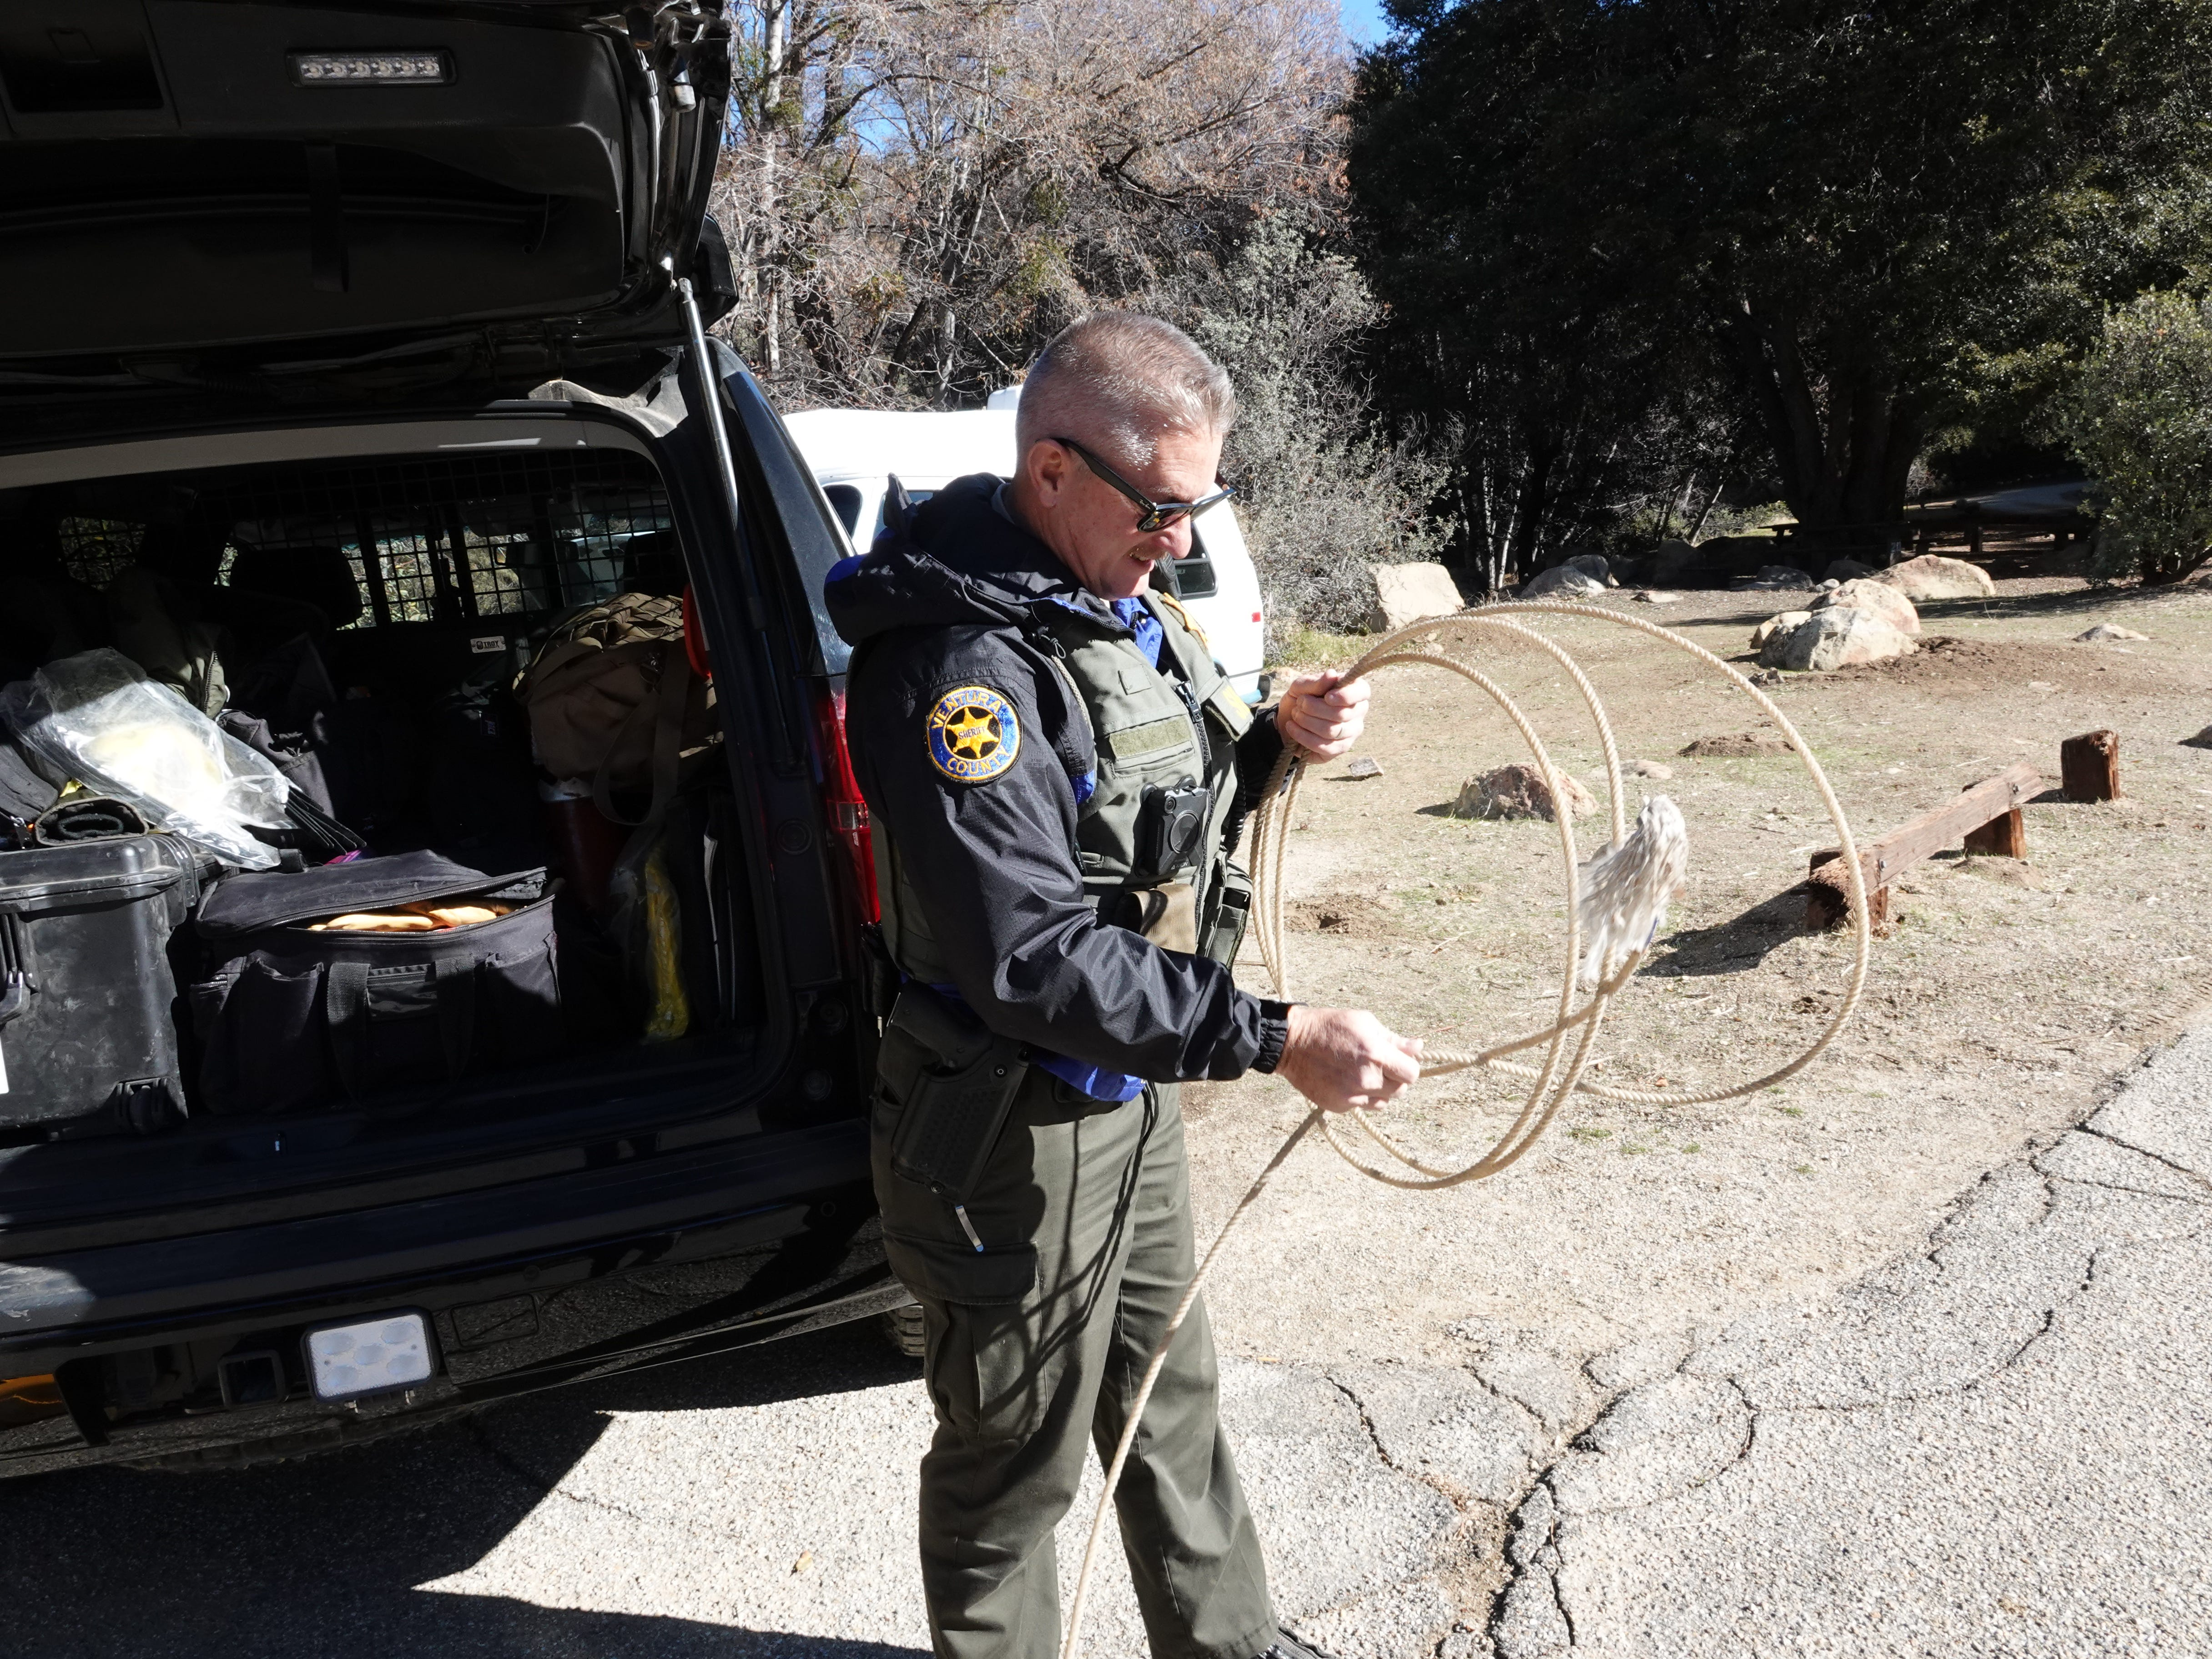 While looking for jumper cables to assist a stranded camper, Ventura County Deputy Bob Steele found a lasso in his patrol car Dec. 29. Steele is one of two deputies who patrol a 610-square mile area from the remote Lockwood Valley substation.